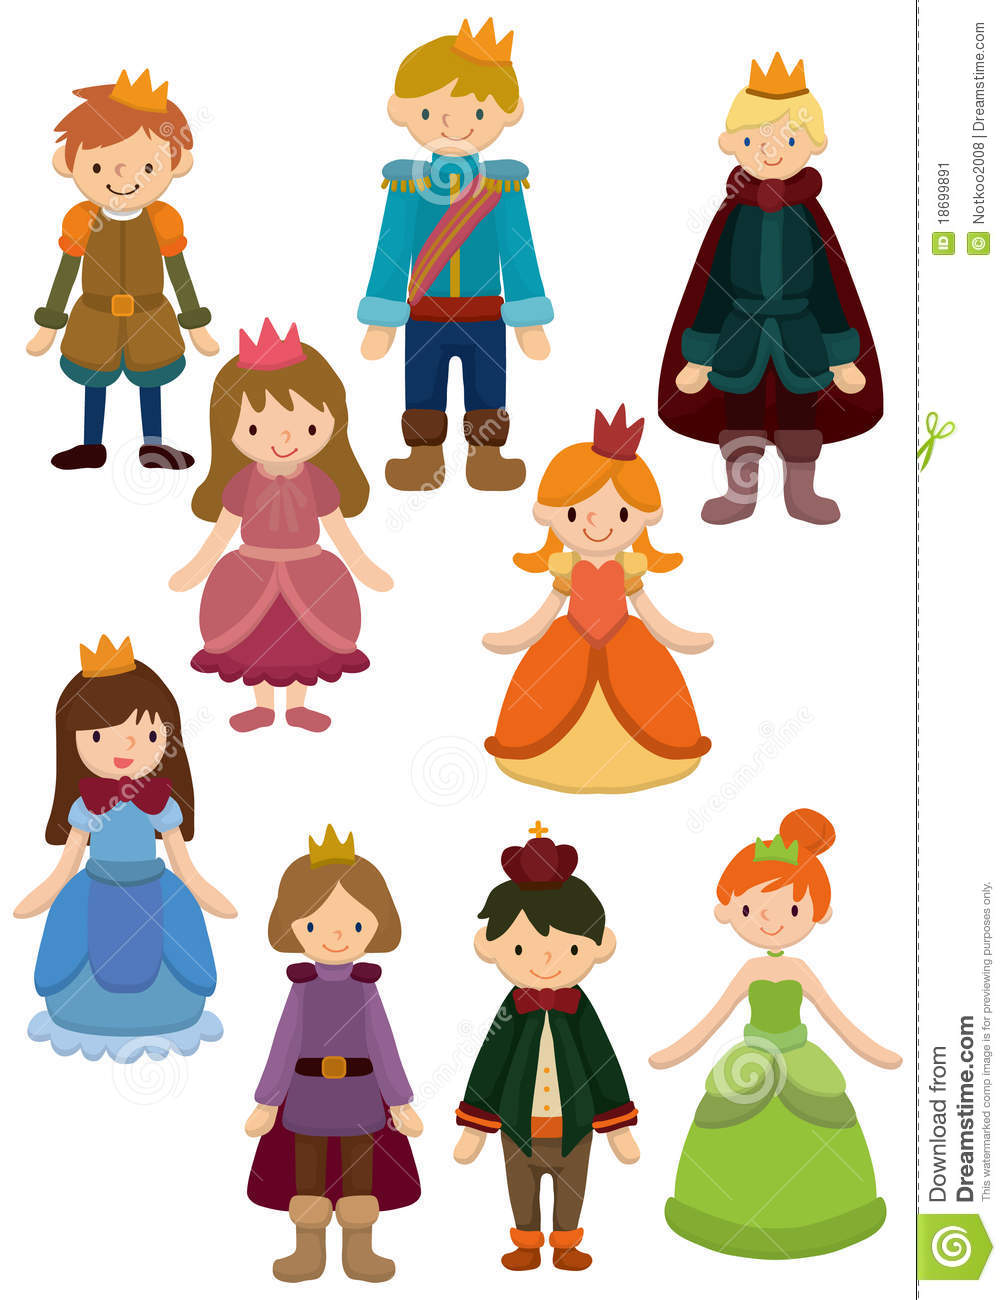 Stock Image: Cartoon Prince and Princess icon